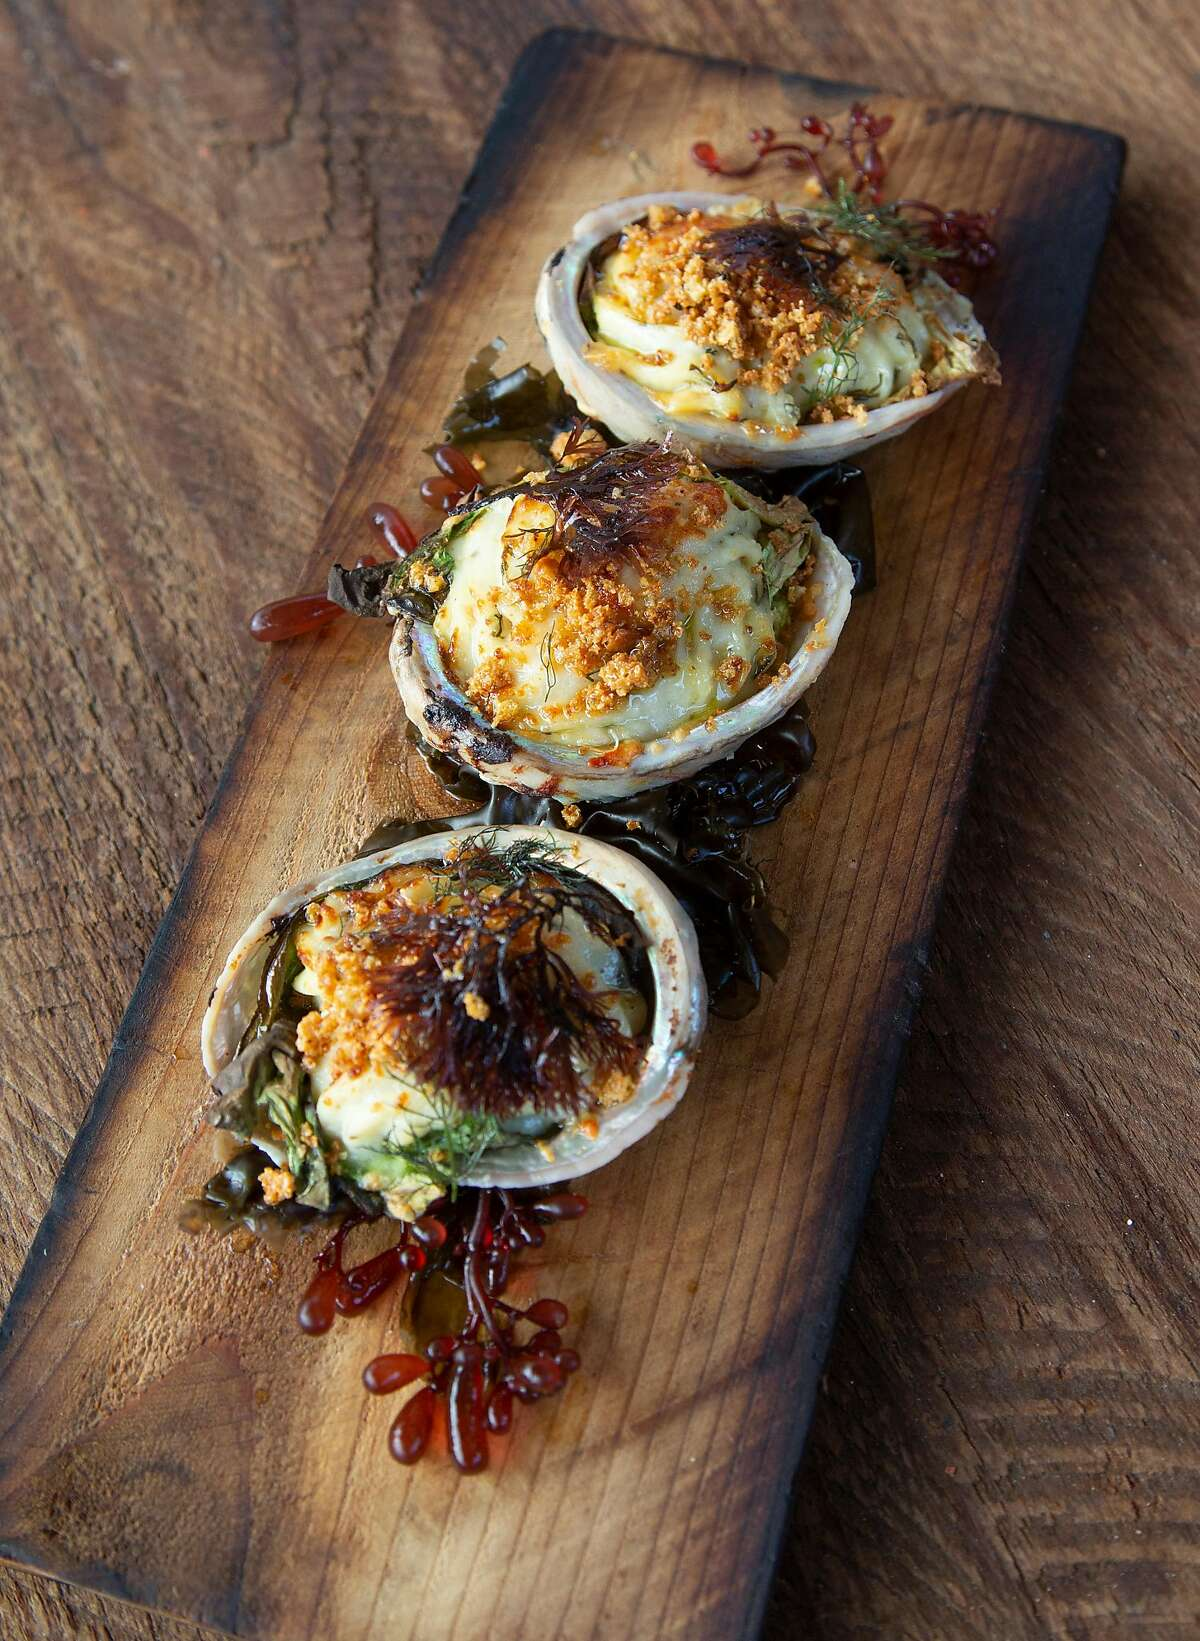 Monterey Bay Abalone Rockefeller includes various seaweeds grown by Monterey Bay Seaweeds in Moss Landing and is one of the menu items at Home restaurant on Wednesday, 8/8, 2018 in Soquel, California.